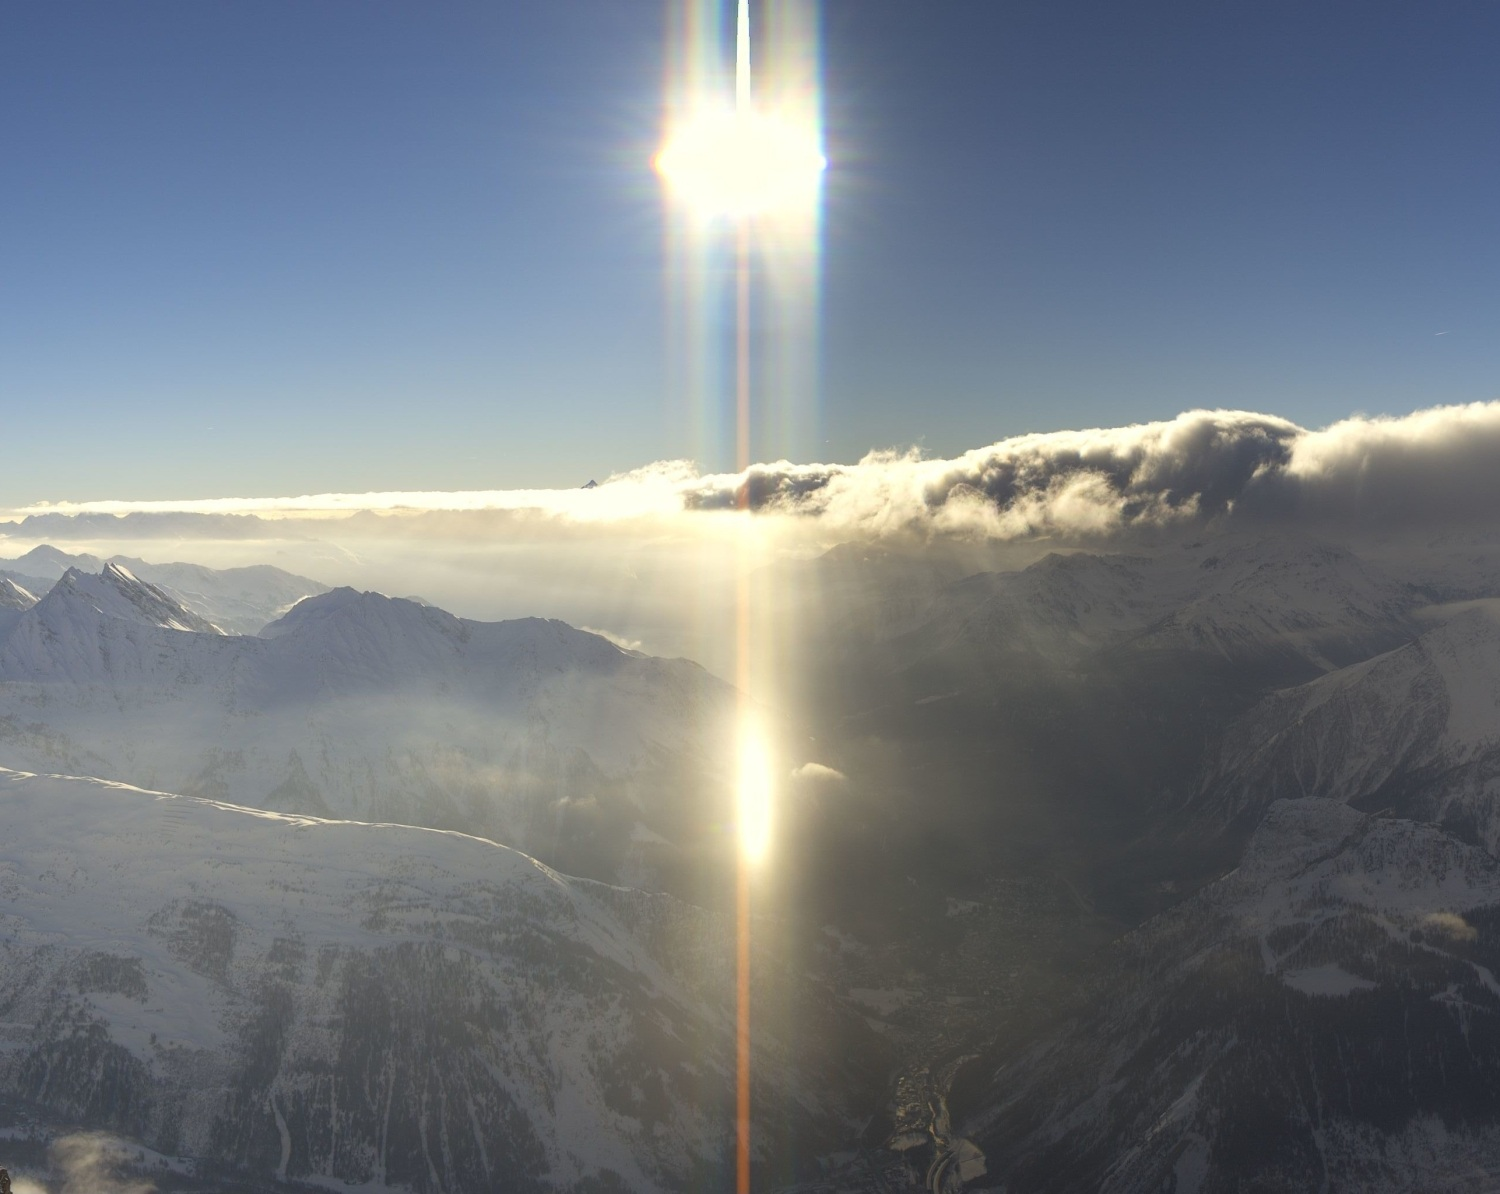 mont-blanc_skyway_2018-12-13_09-50-00.jpg